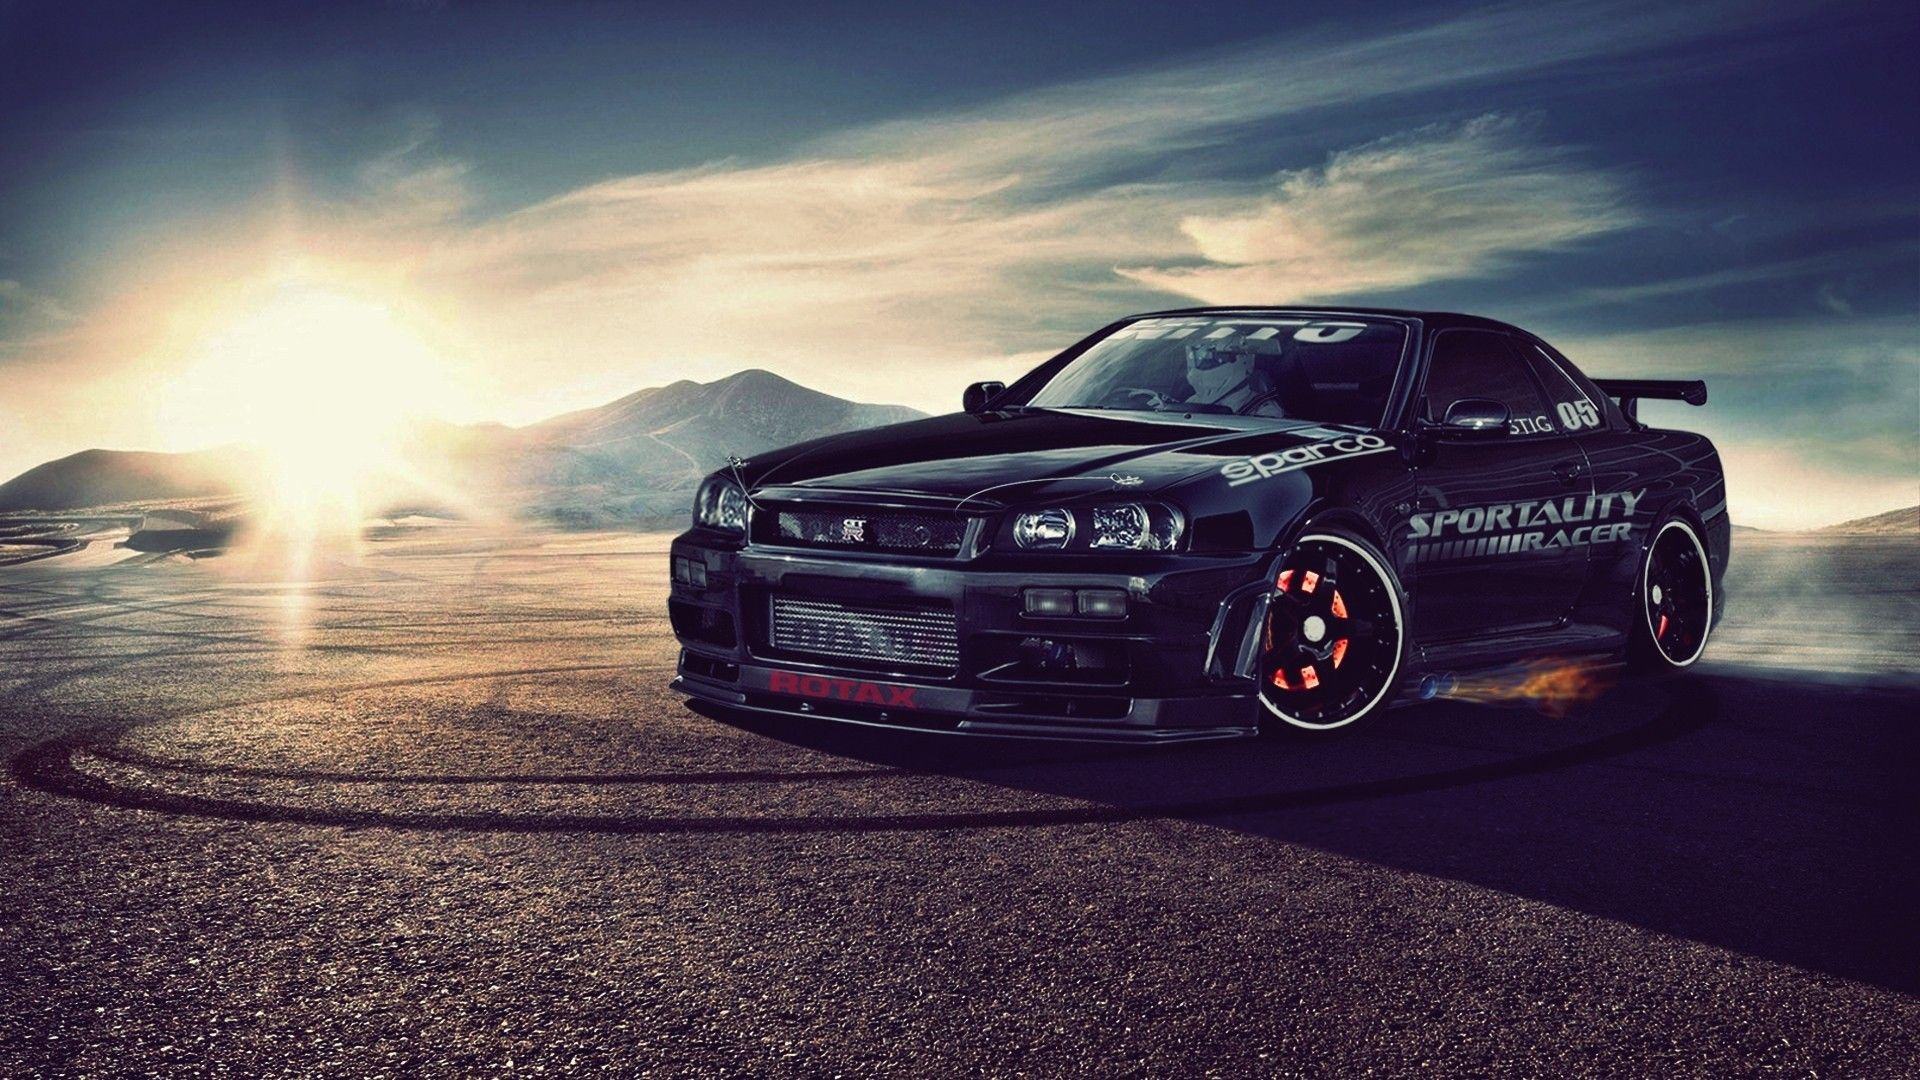 Pin By Nathan Jenkins On Drift Cars Skyline Gtr R34 Nissan Skyline Nissan Gtr Skyline